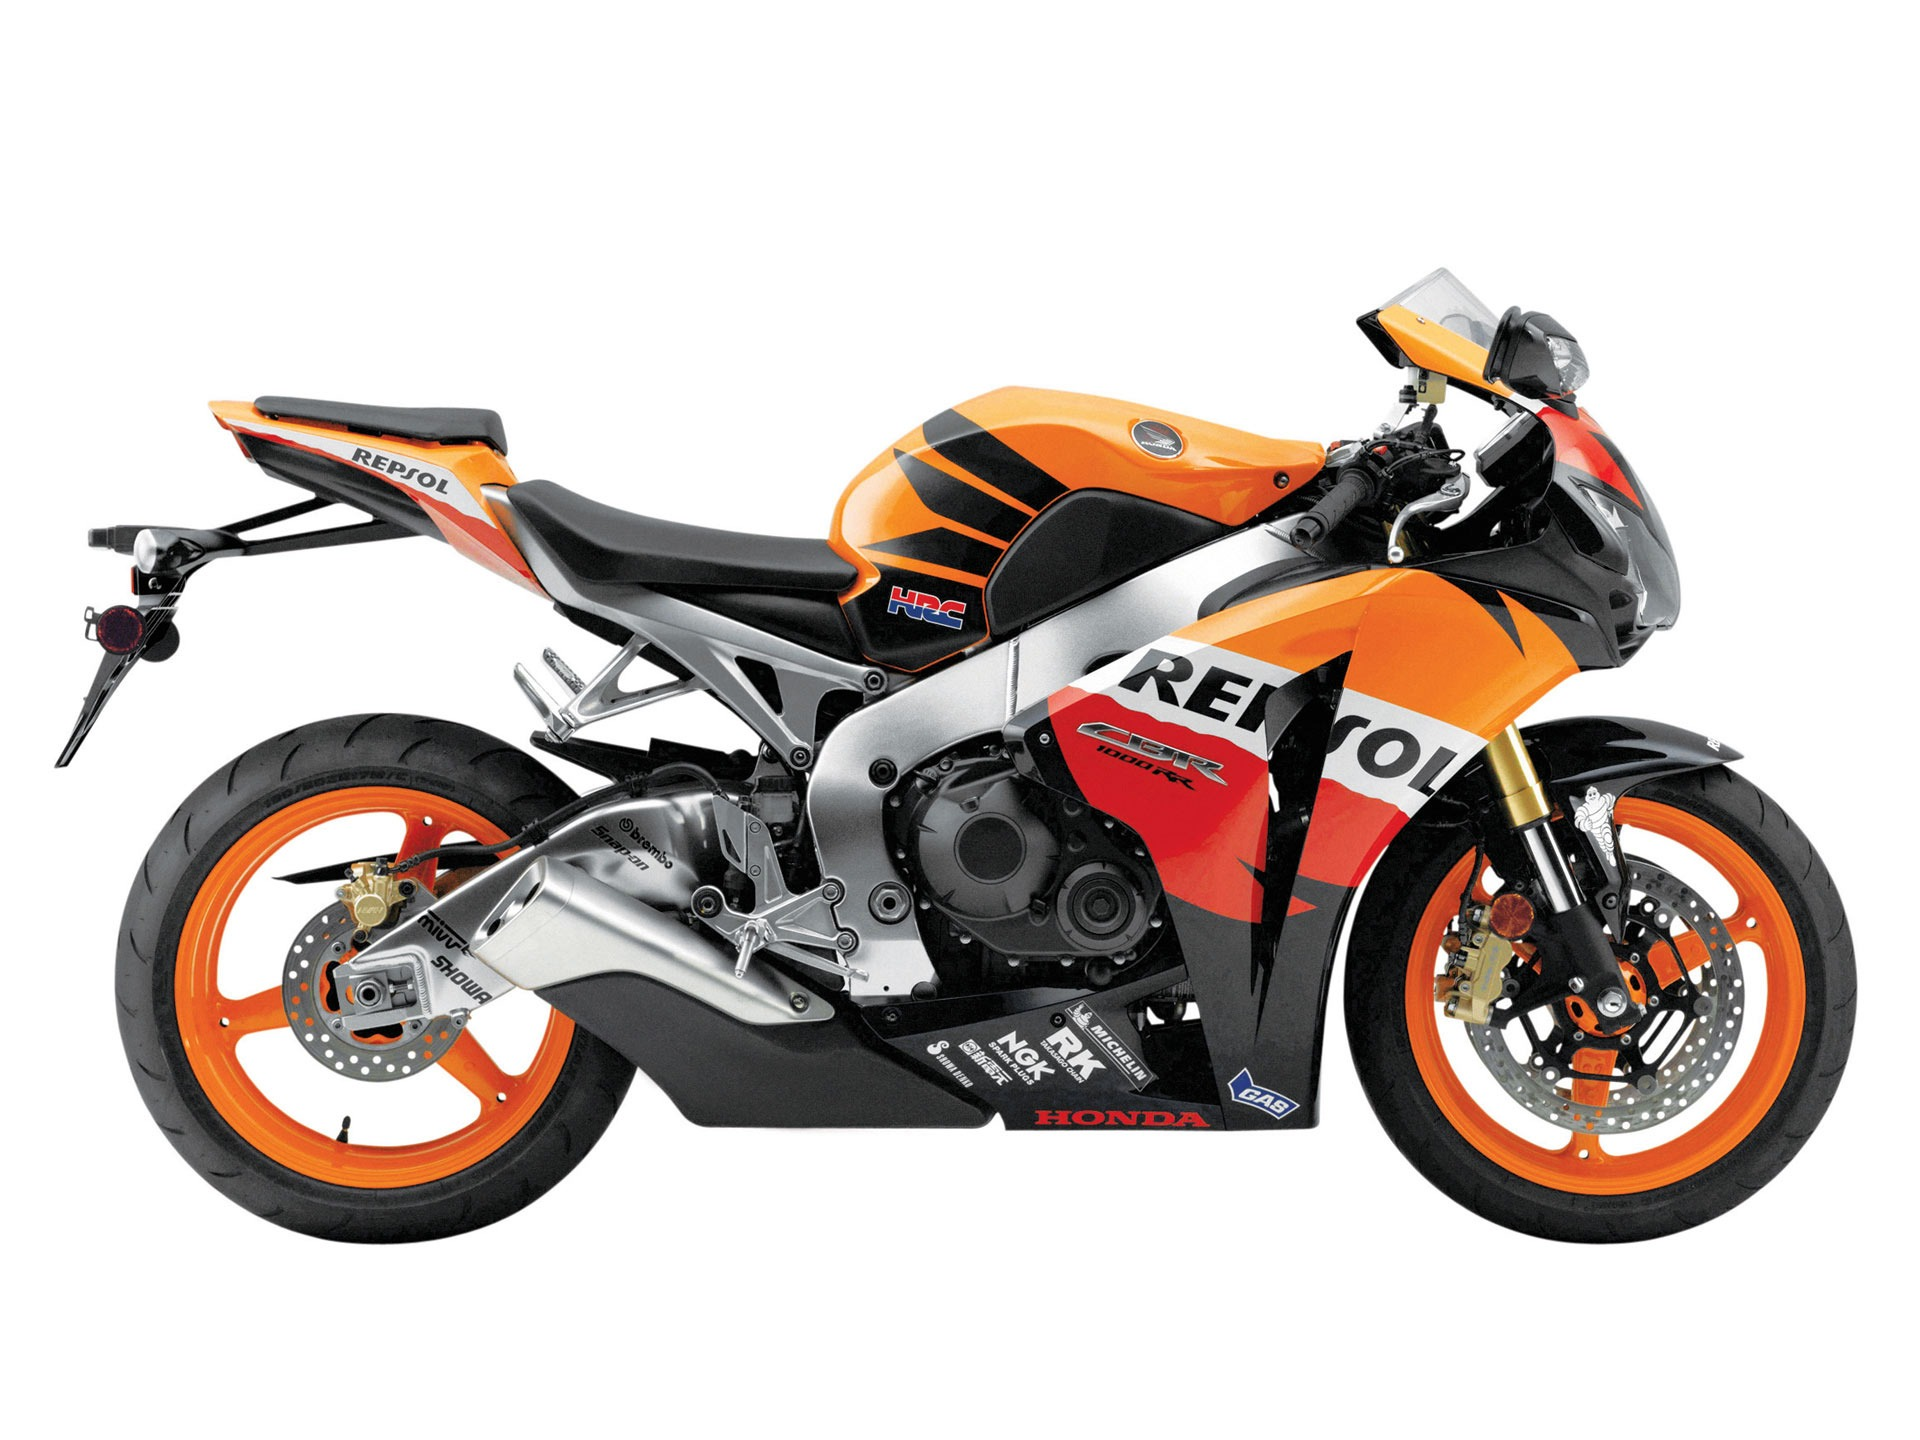 Honda CBR1000RR Wallpaper Motorcycles Wallpapers